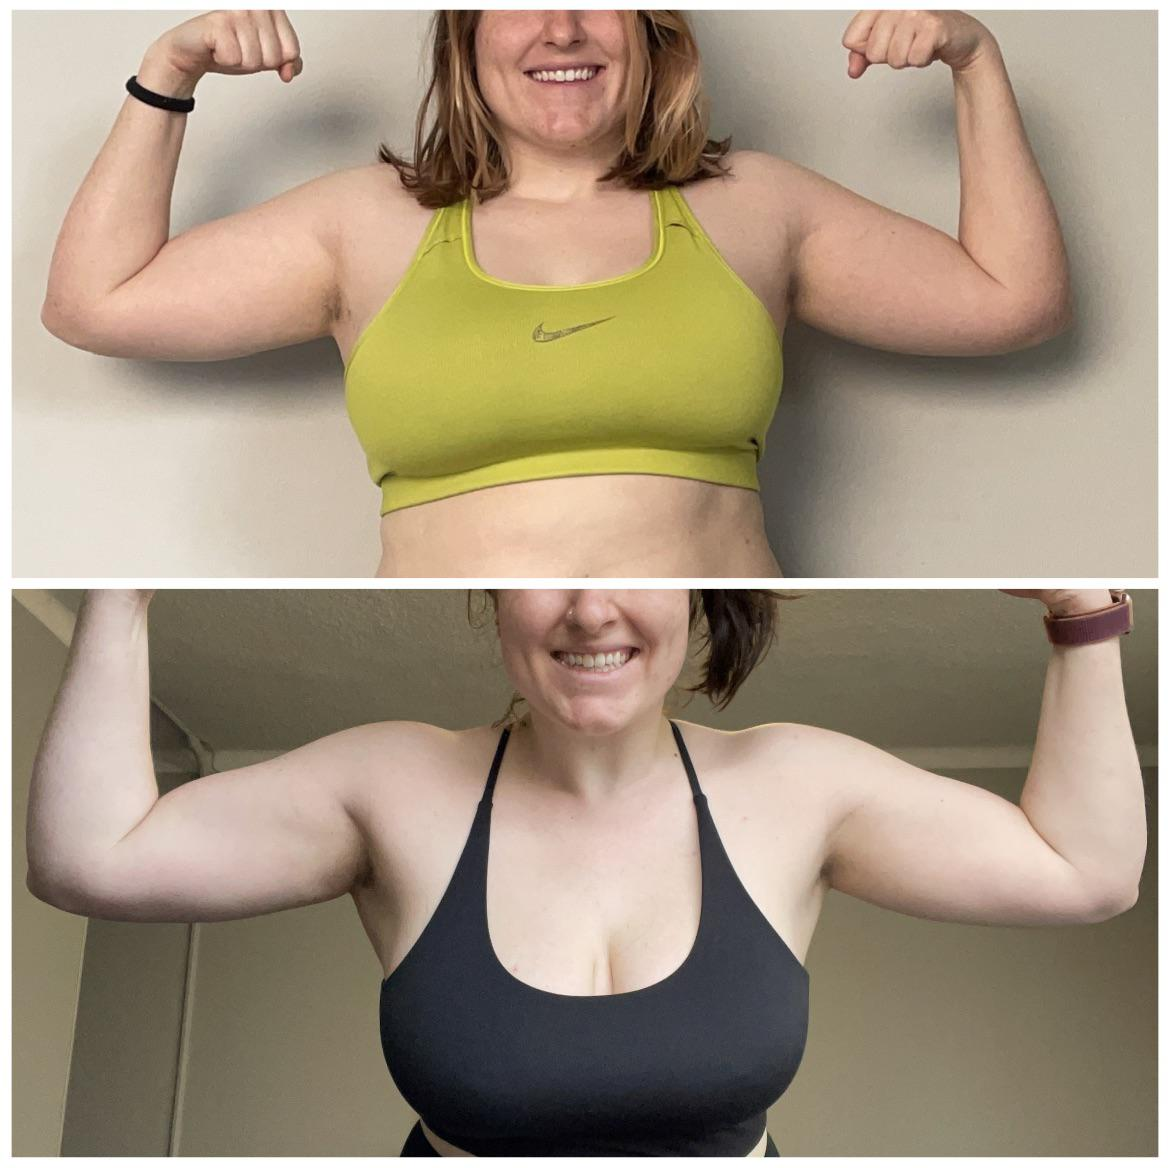 5 foot 5 Female Before and After 7 lbs Weight Loss 189 lbs to 182 lbs